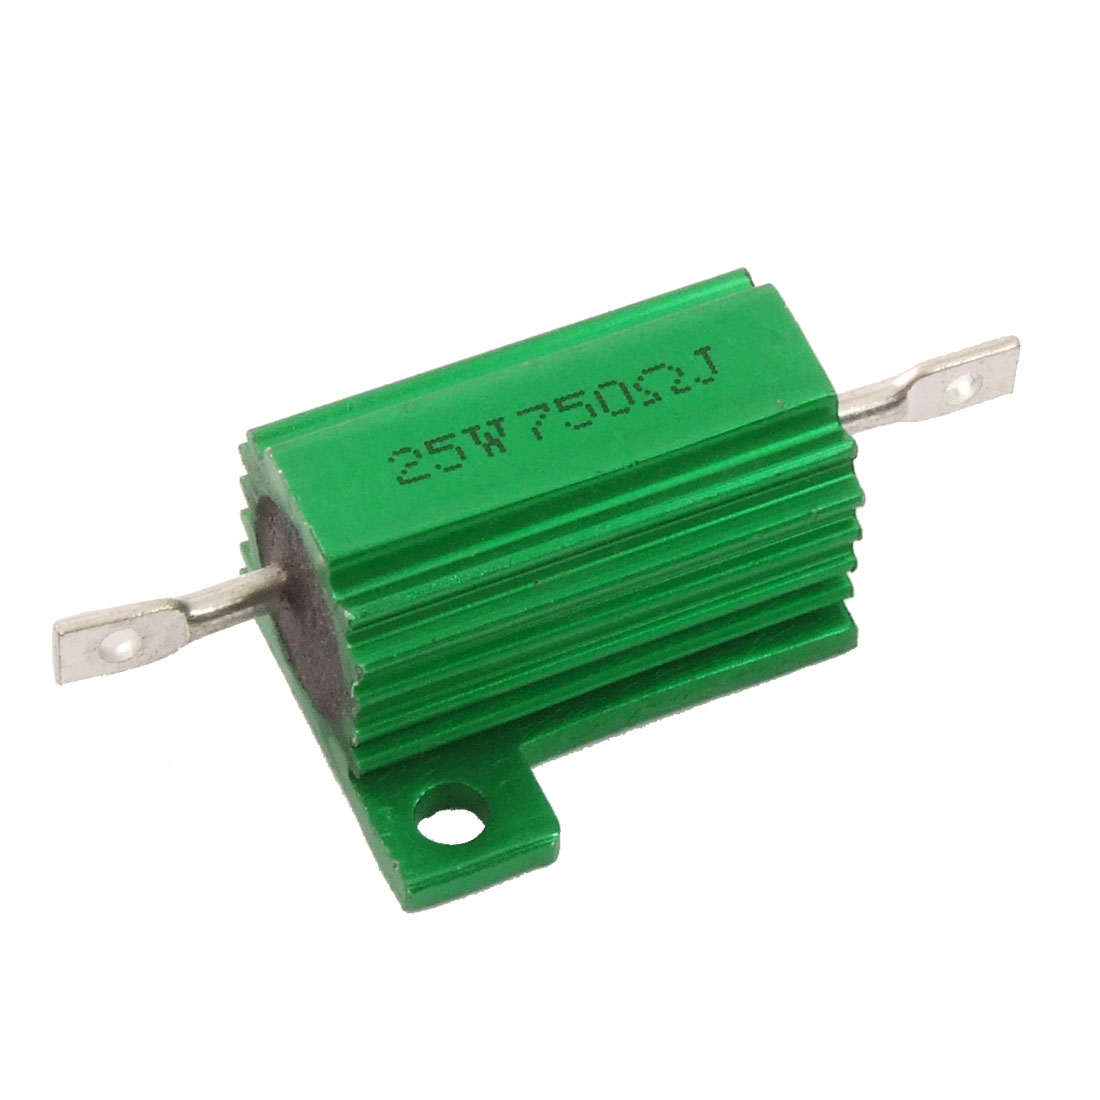 Chassis Mounted 25W 750 Ohm 5% Aluminum Case Wirewound Resistor